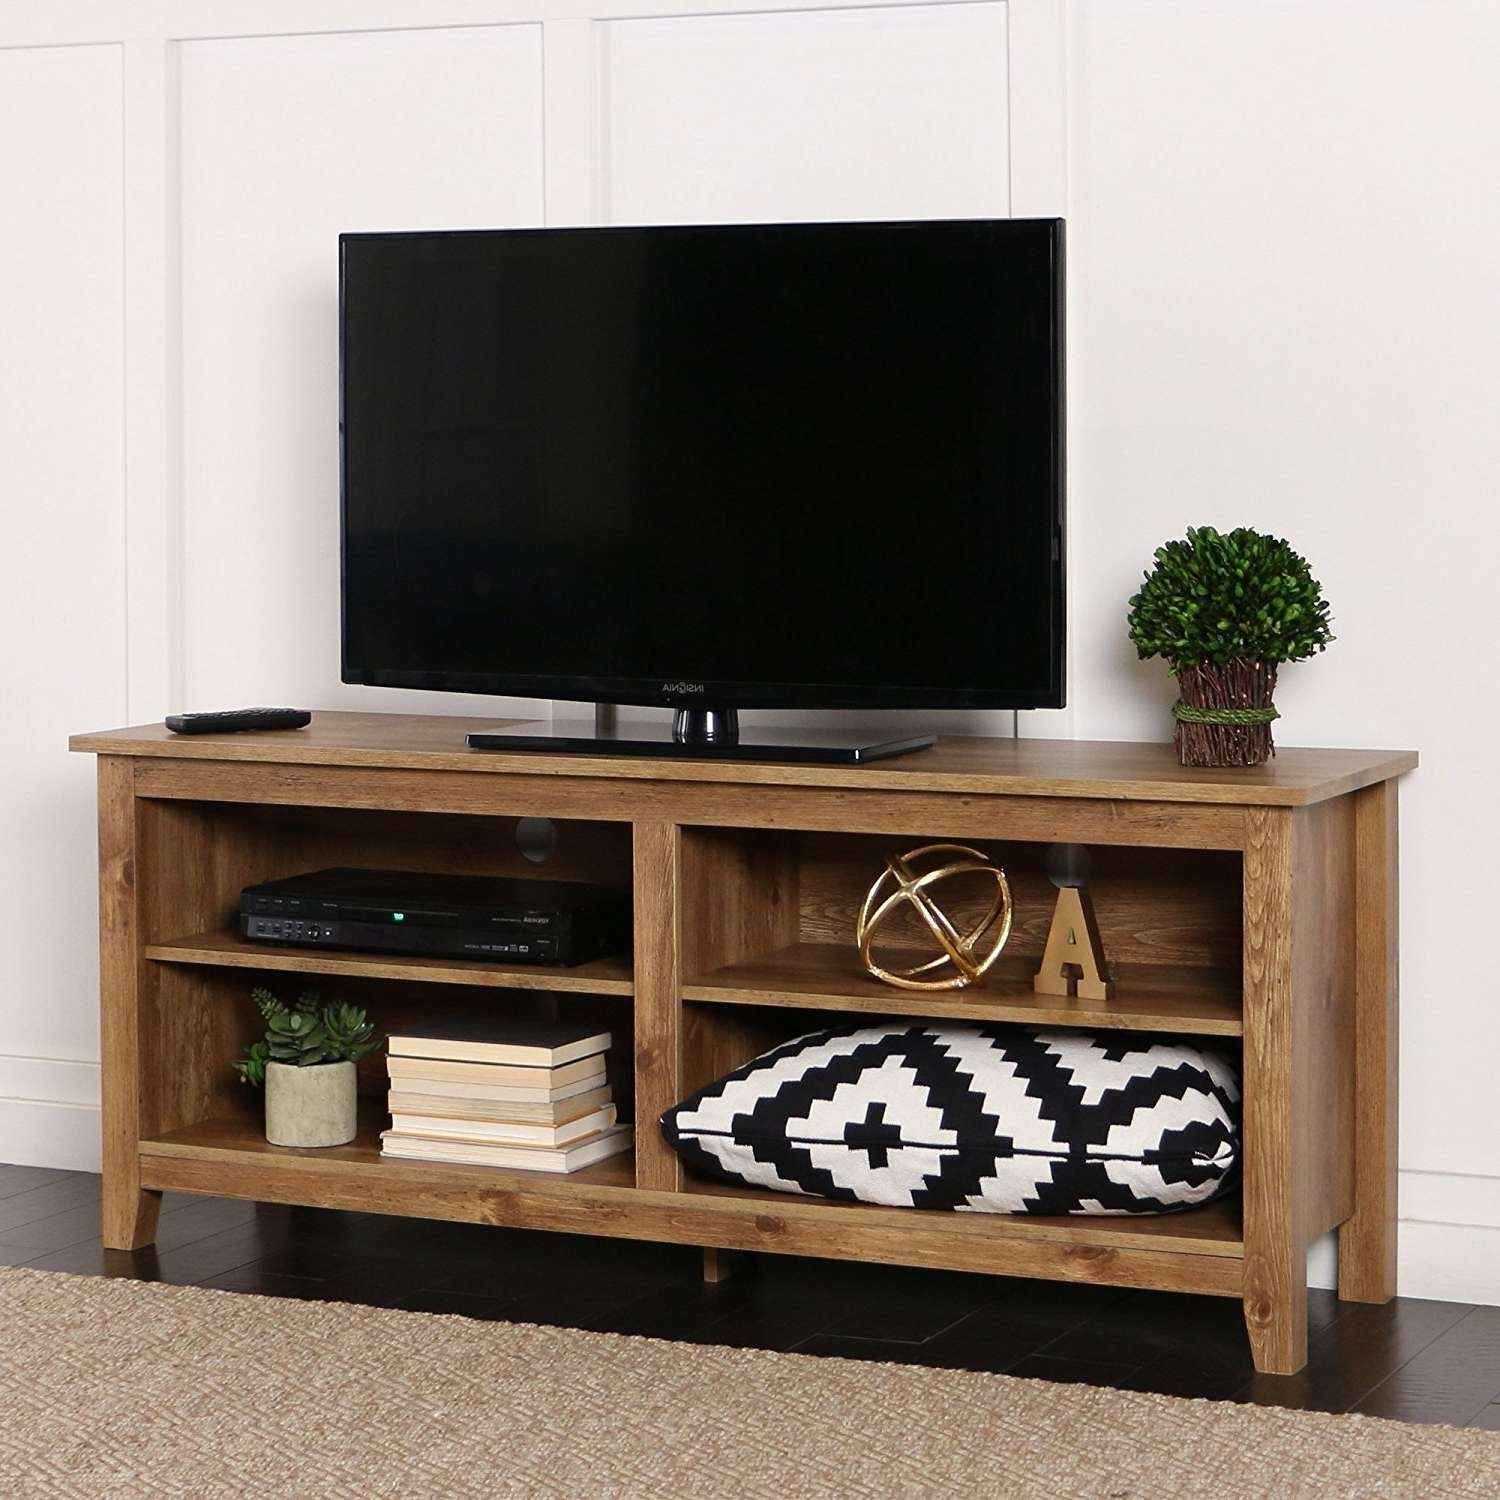 Tv Stand : Corner Tv Standnch Unforgettablemagenspirations Stands With Regard To Corner Tv Stands 40 Inch (View 19 of 20)